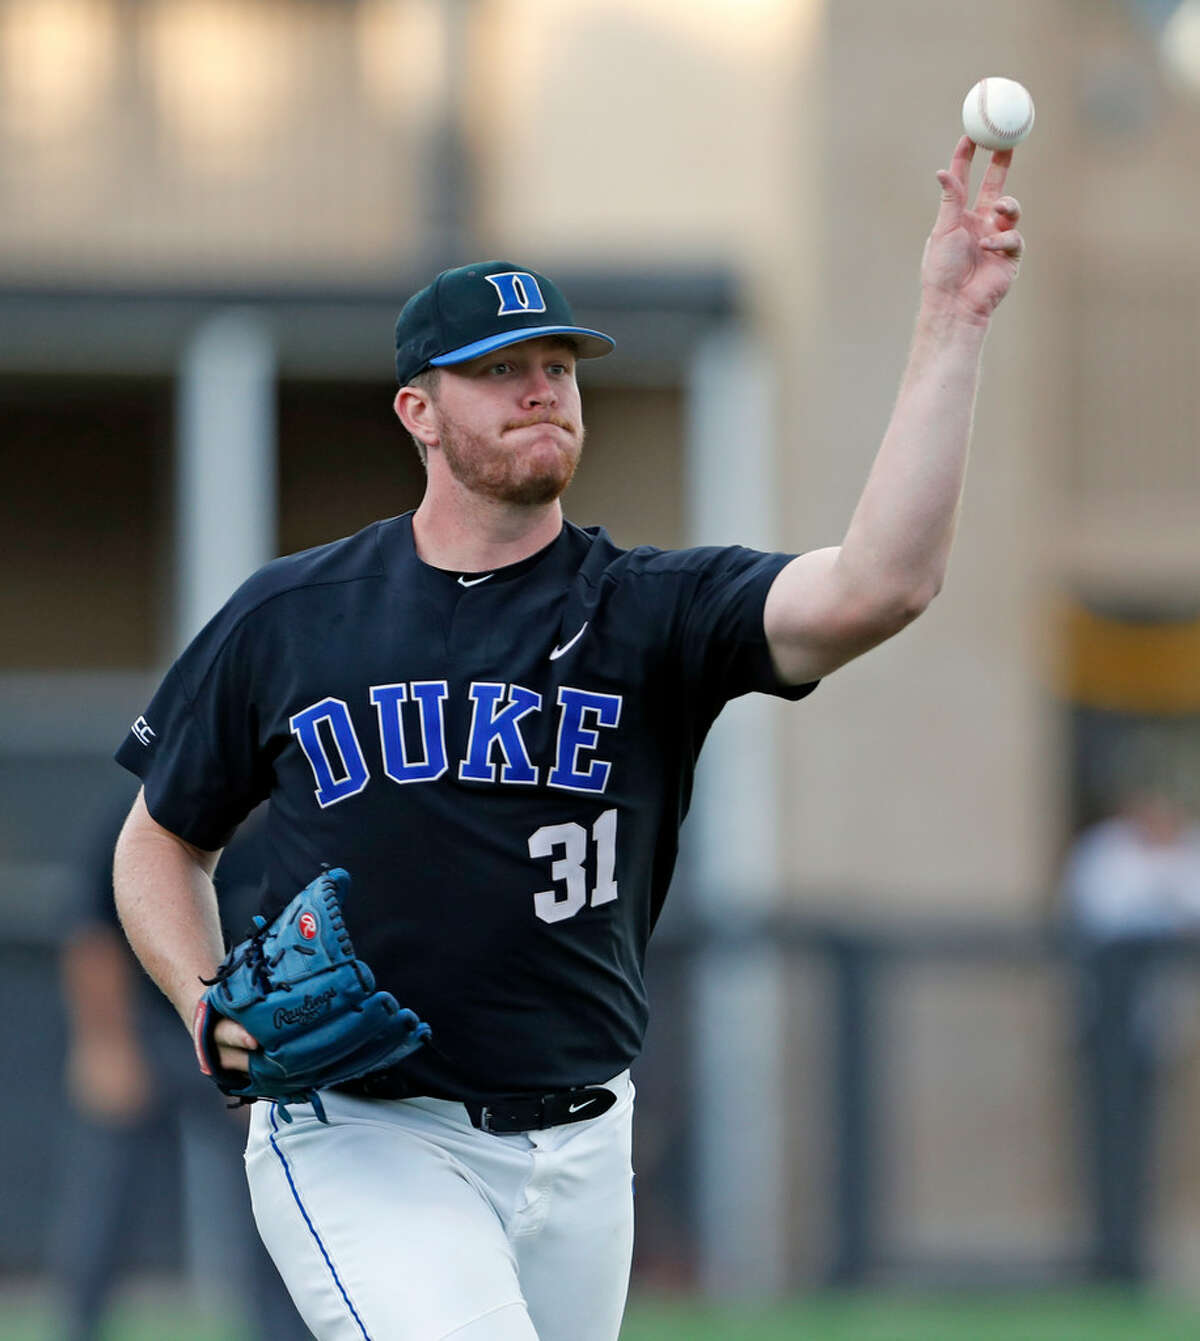 Duke's Graeme Stinson (31) throws the ball to first base during an NCAA college baseball tournament super regional game against Texas Tech, Sunday, June 10, 2018, in Lubbock, Texas. (Brad Tollefson/Lubbock Avalanche-Journal via AP)